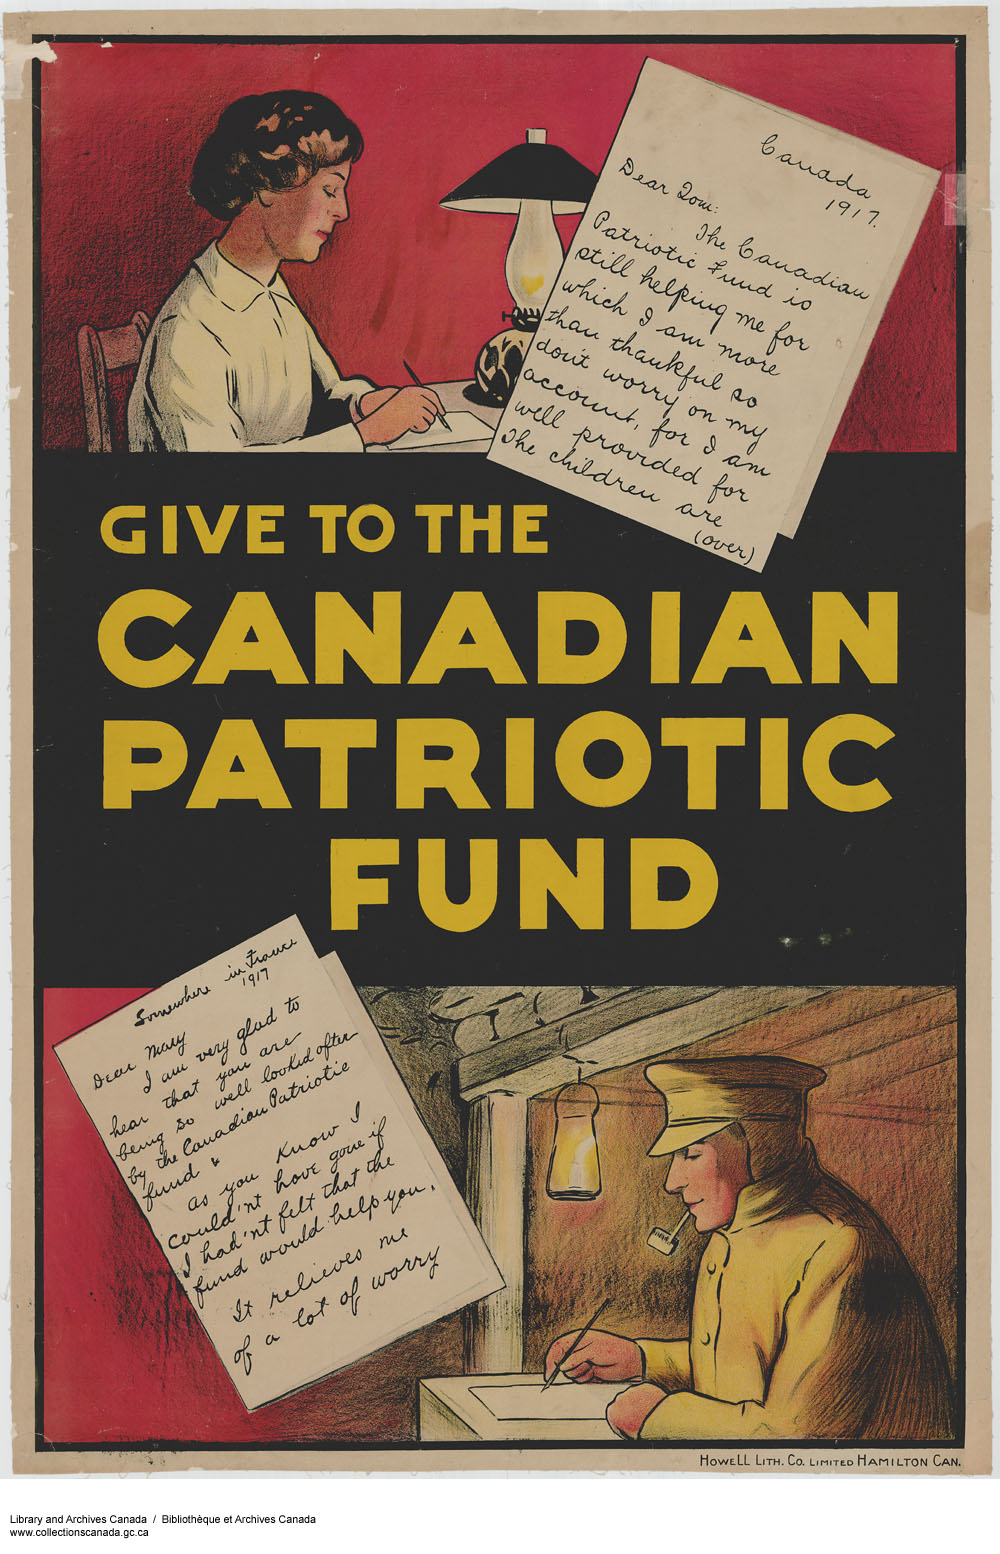 Cdn. Patriotic Fund